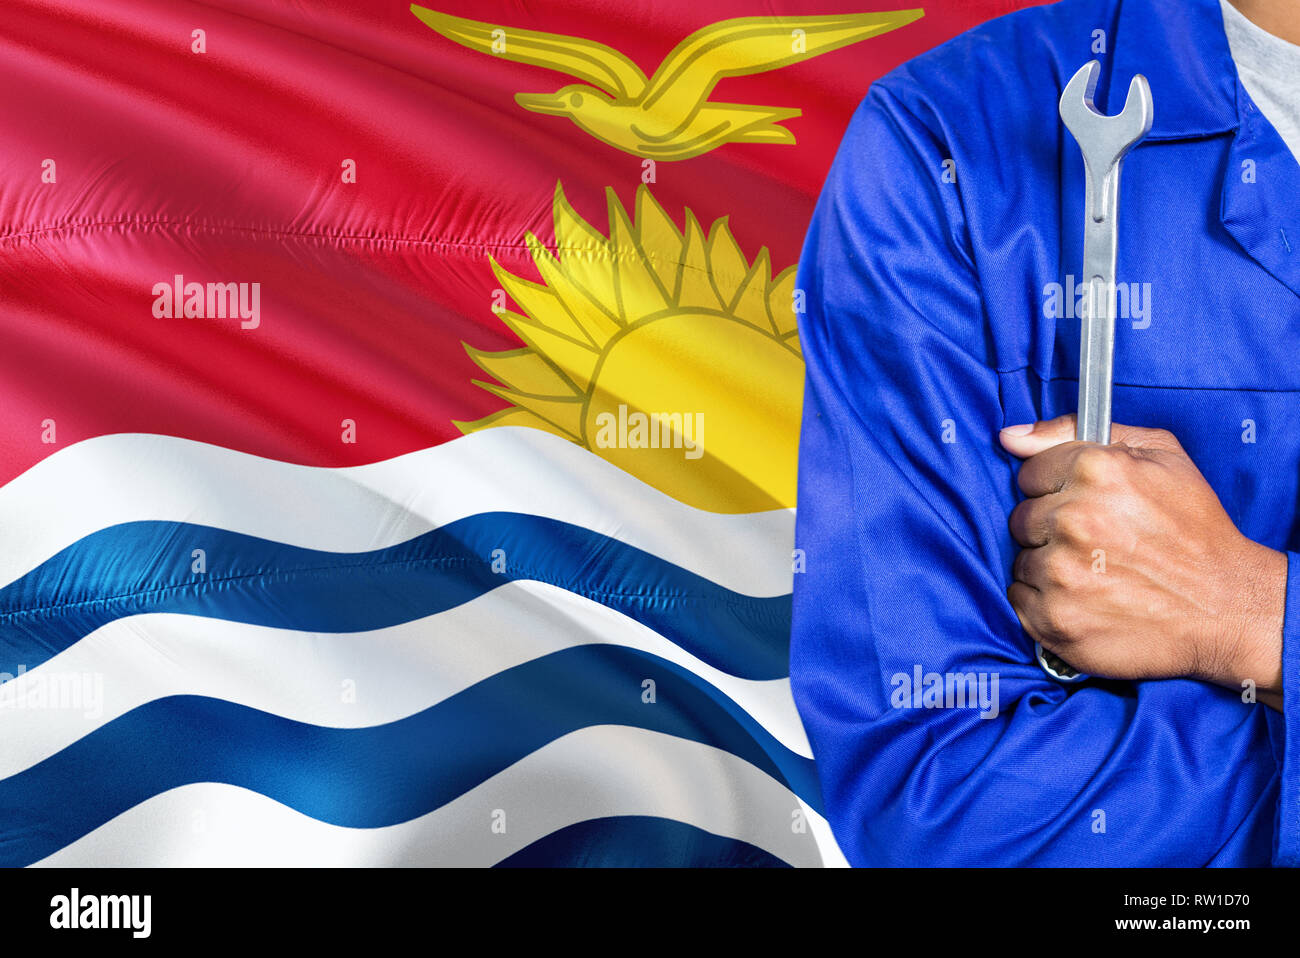 Mechanic in blue uniform is holding wrench against waving Kiribati flag background. Crossed arms technician. - Stock Image